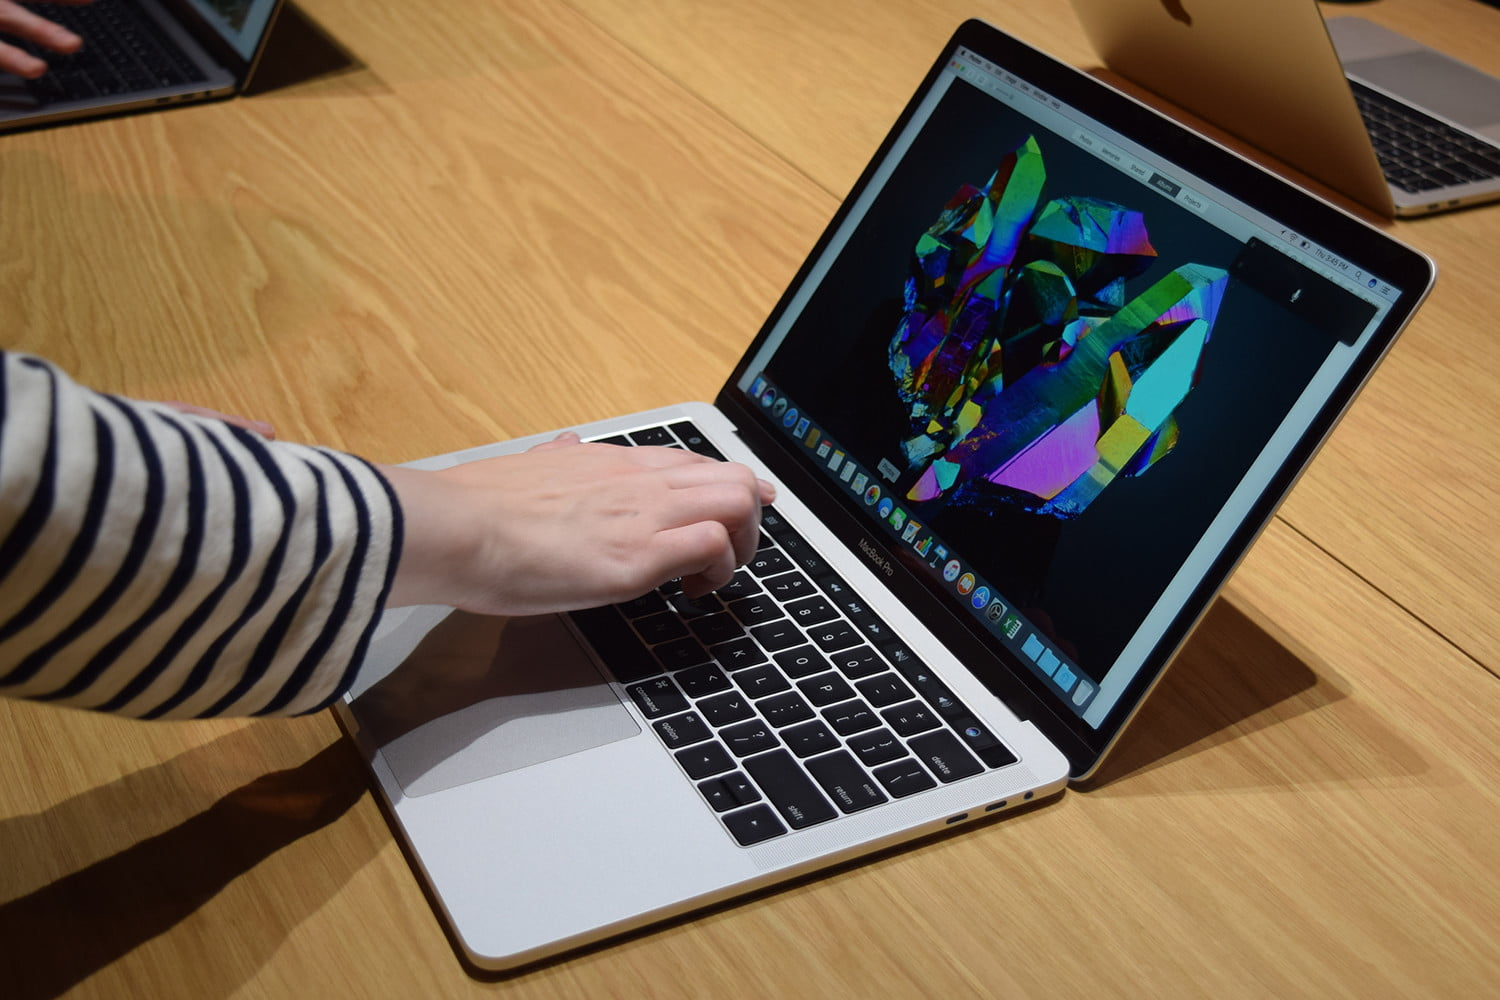 Apple offers free battery replacement for some MacBook Pros